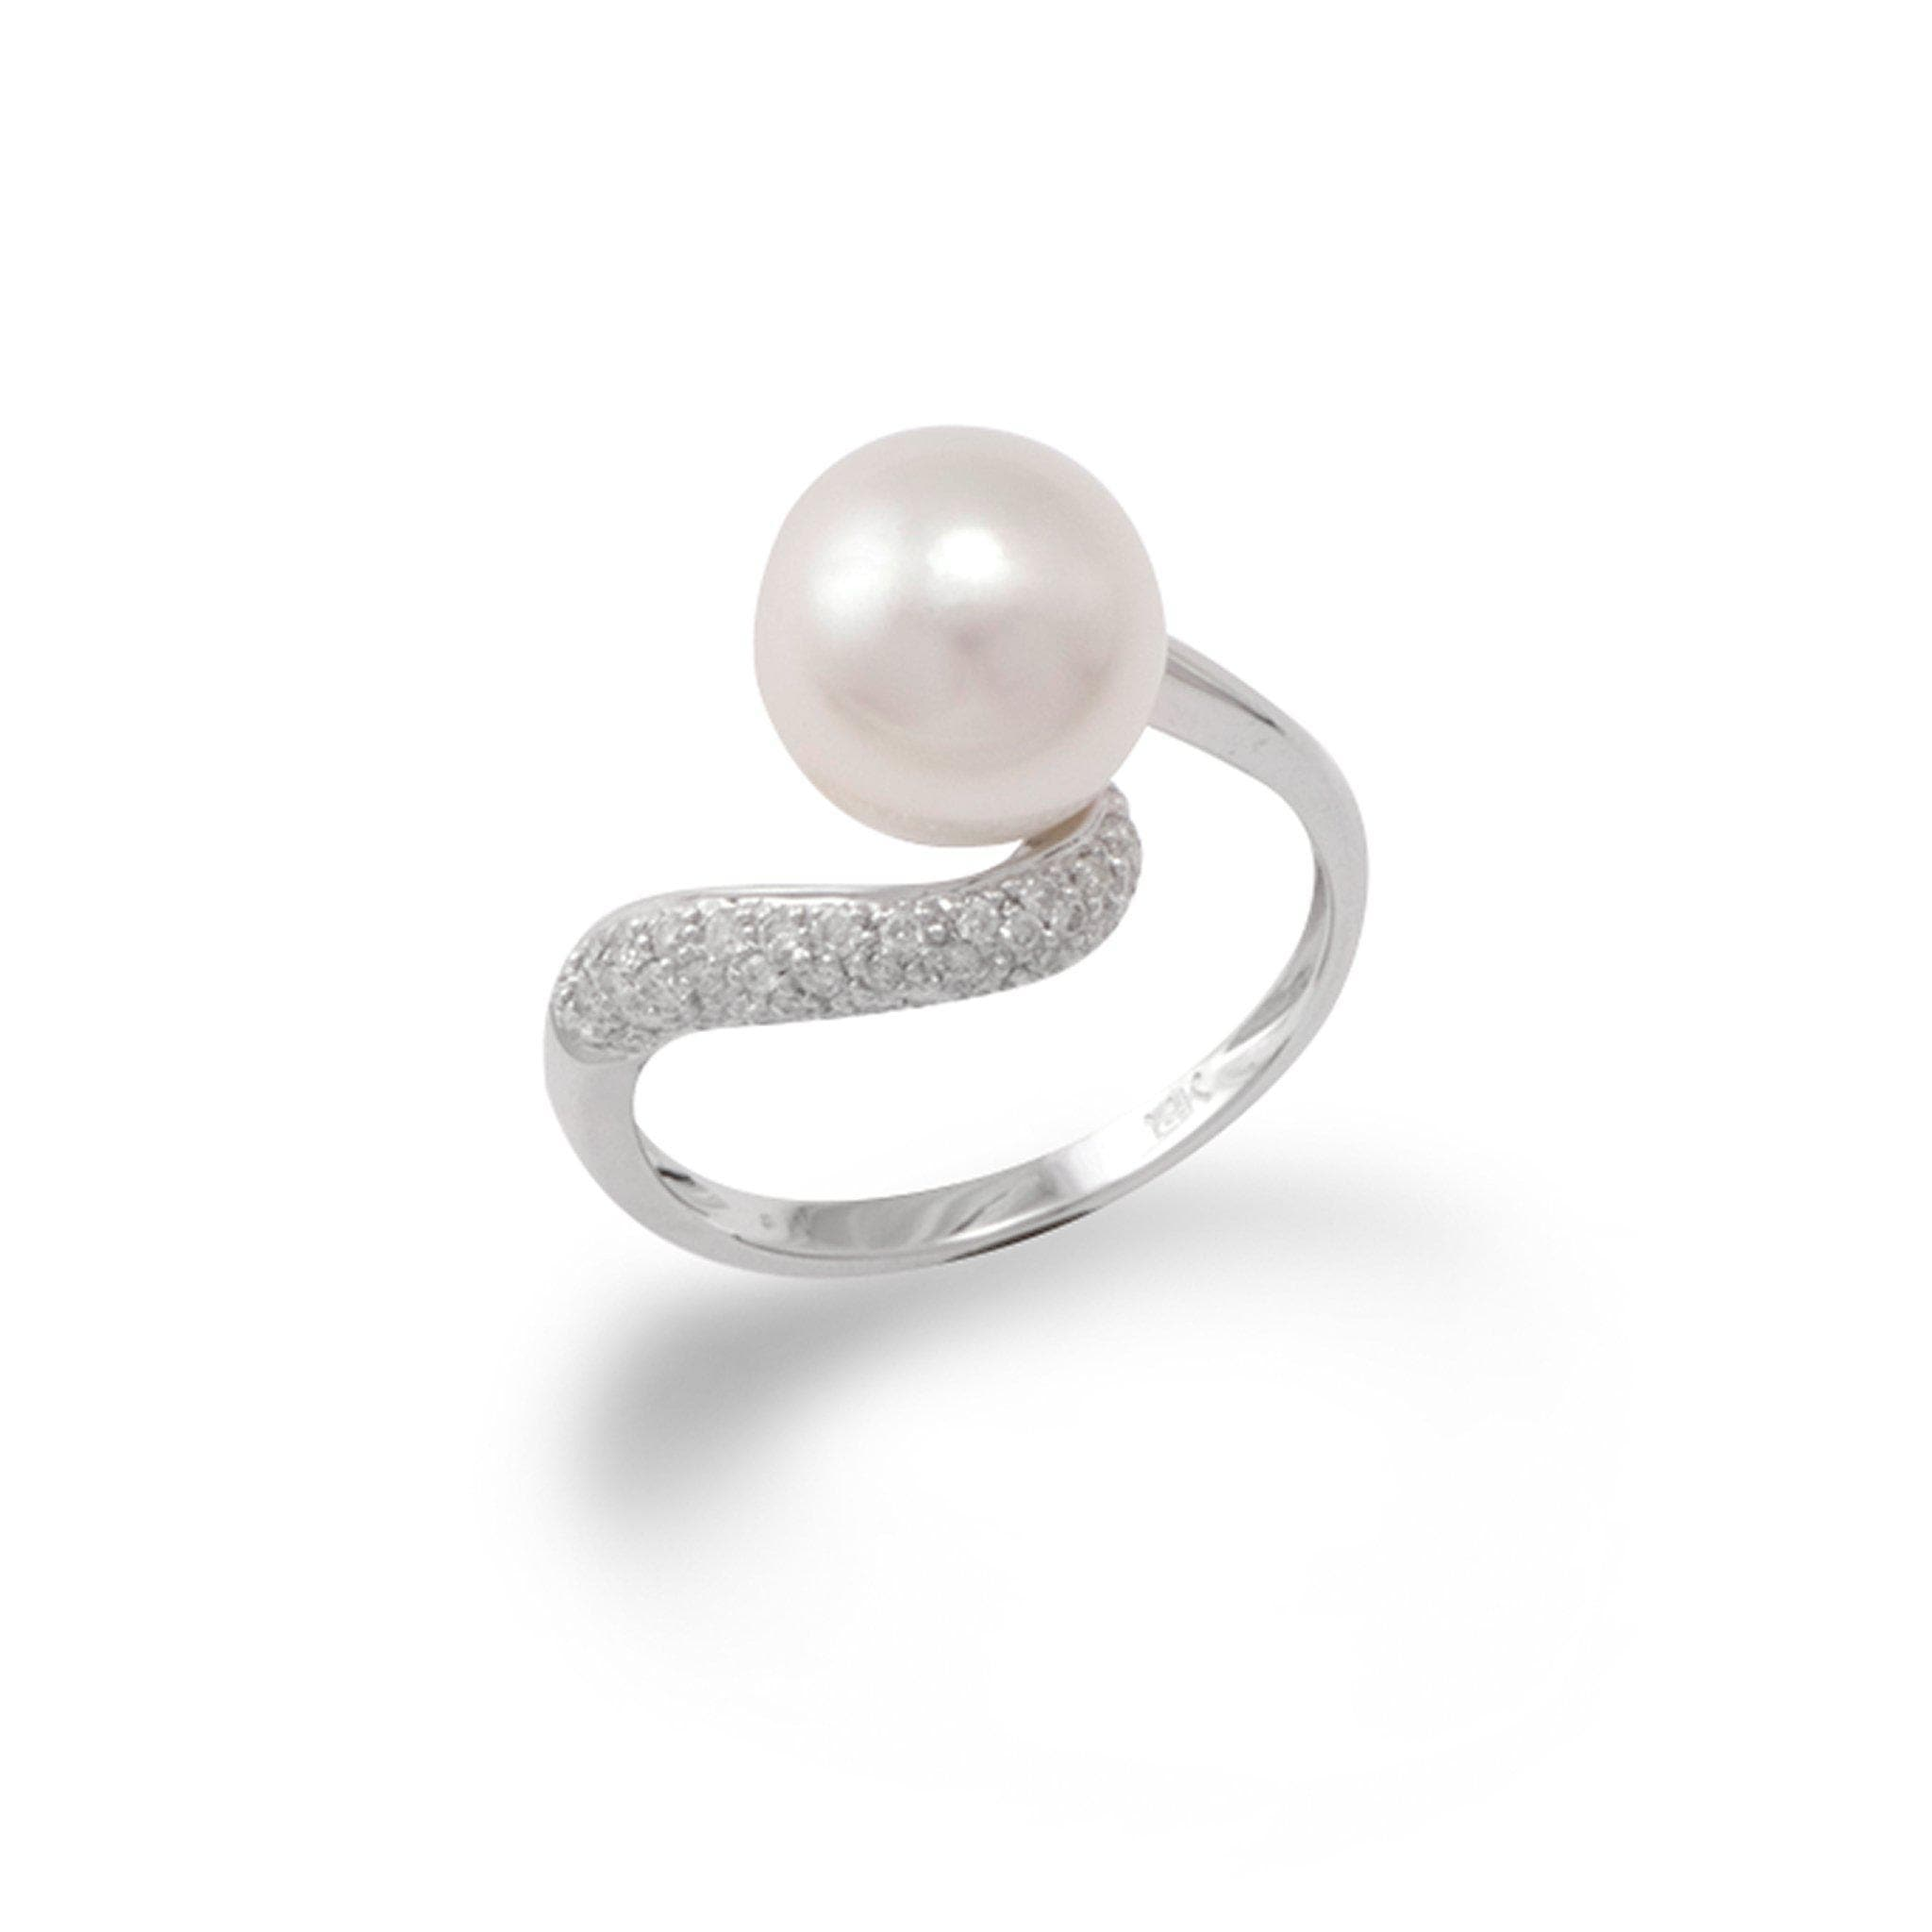 South Sea White Pearl Ring with Diamonds in 14K White Gold (9-10mm)